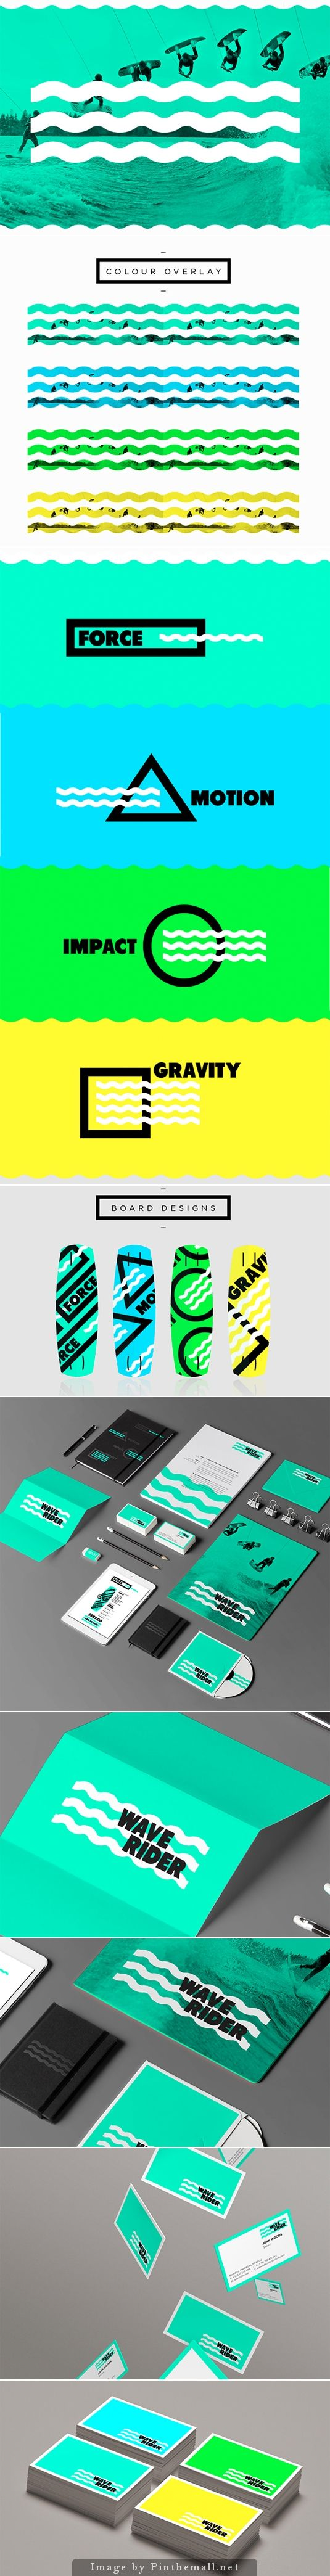 Wake boarding branding makes a splash by Jonathan Quintin